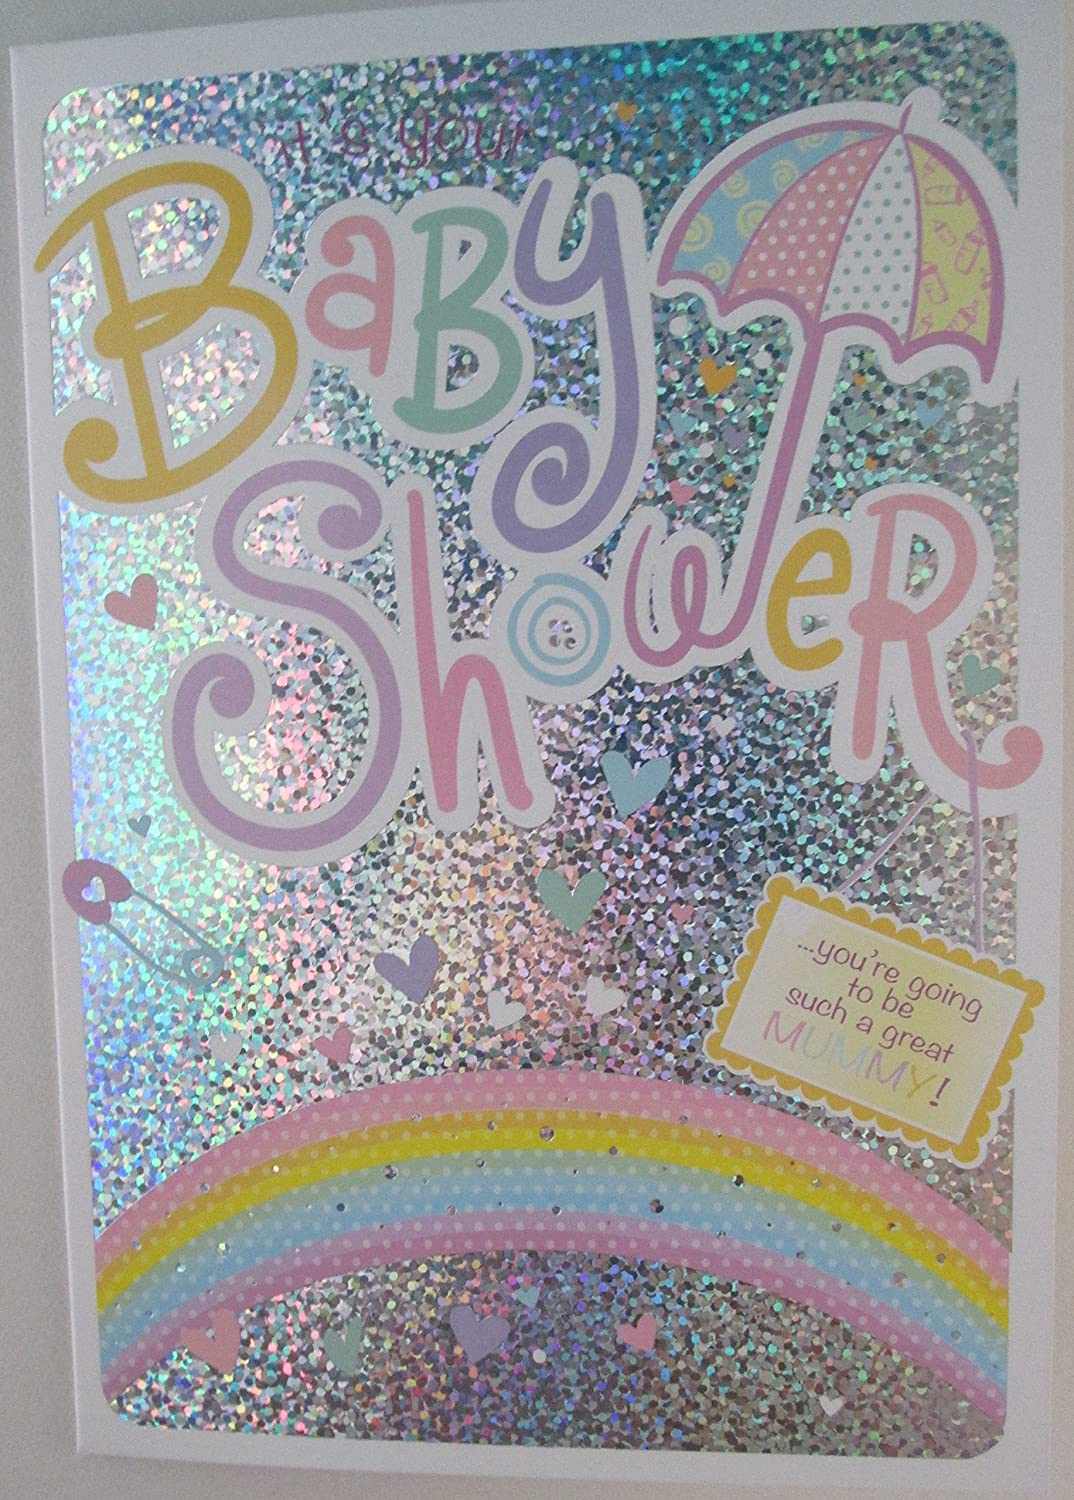 Baby Shower Card - For a Girl or Boy - Glittery effect front The Design Studio